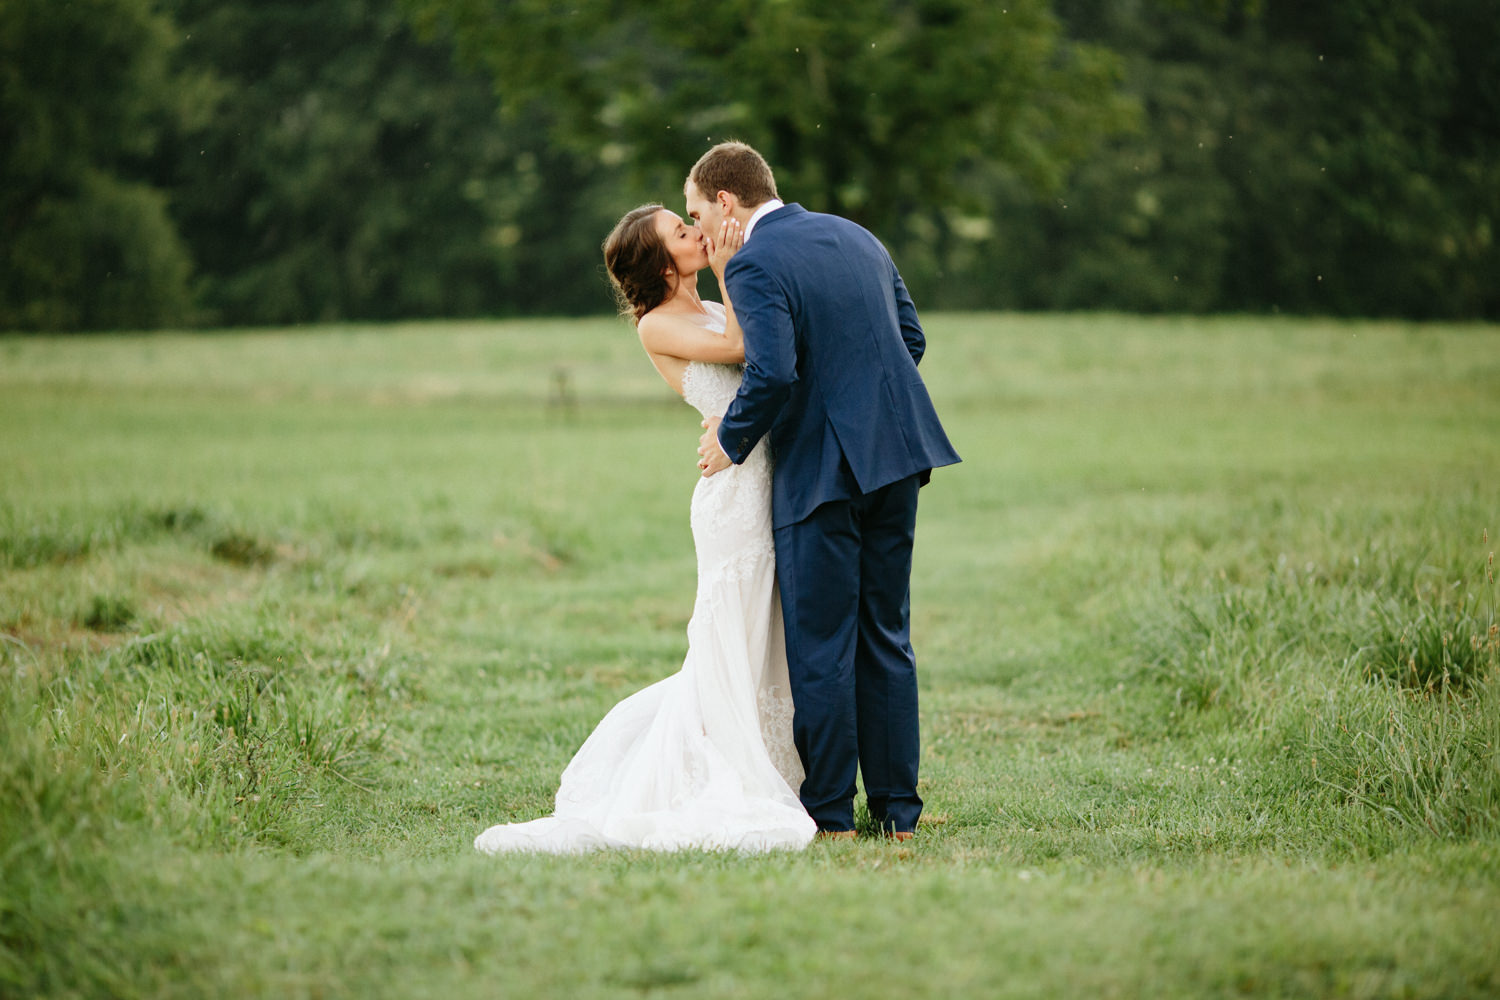 sweetmeadowfarmwedding-2097.jpg